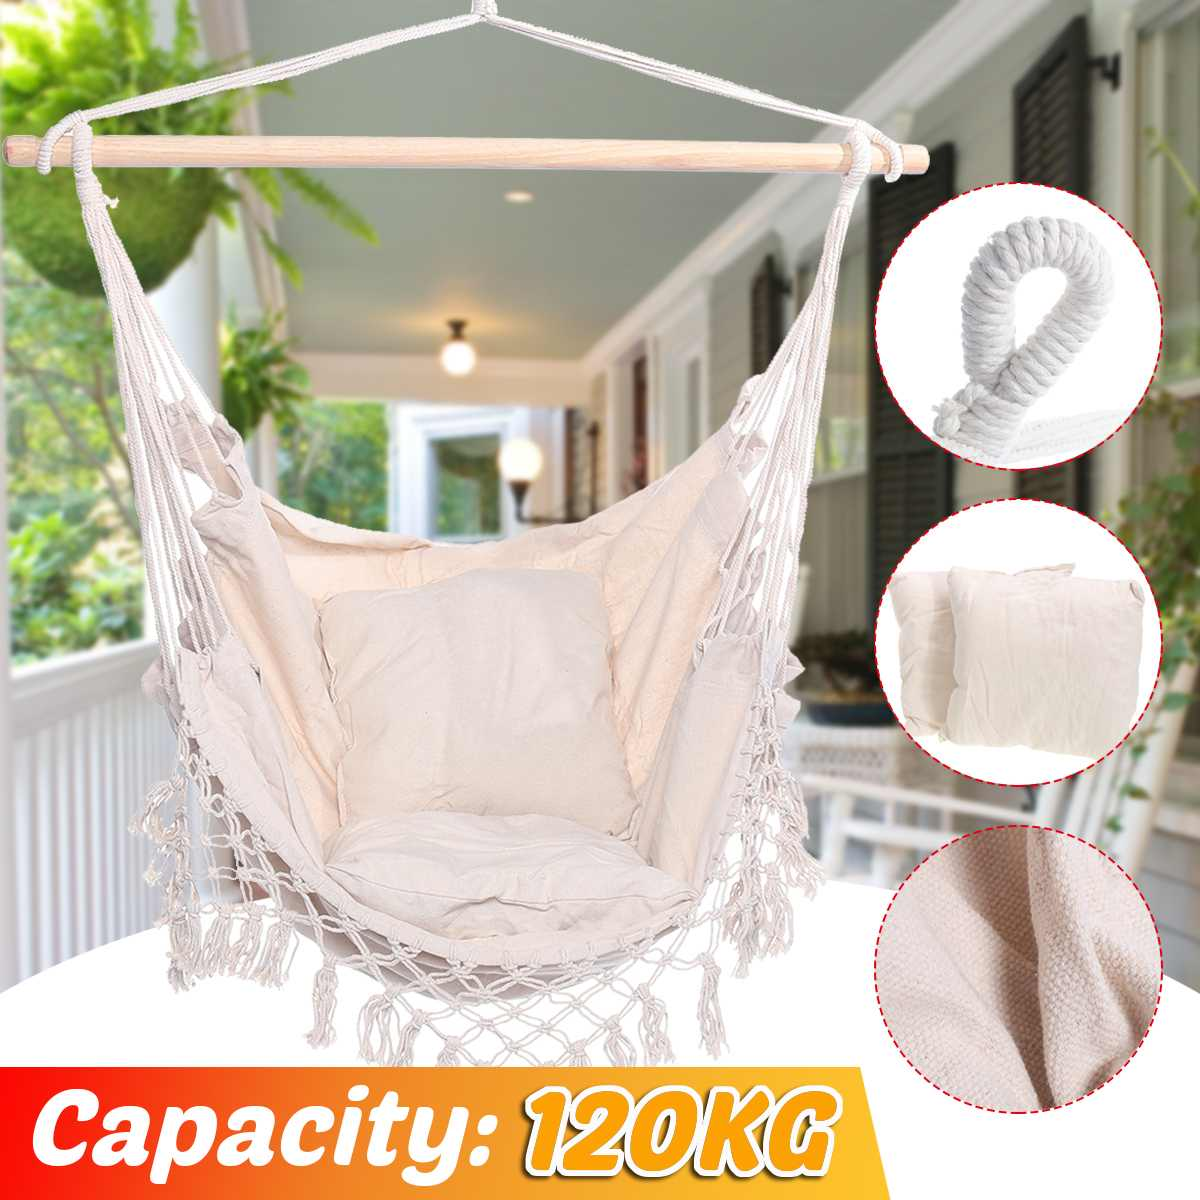 Indoor Outdoor Fringed Camping Hammock Garden Hanging Chair Travel For Child Adult 120kg Capacity Swing Chair With Pillows